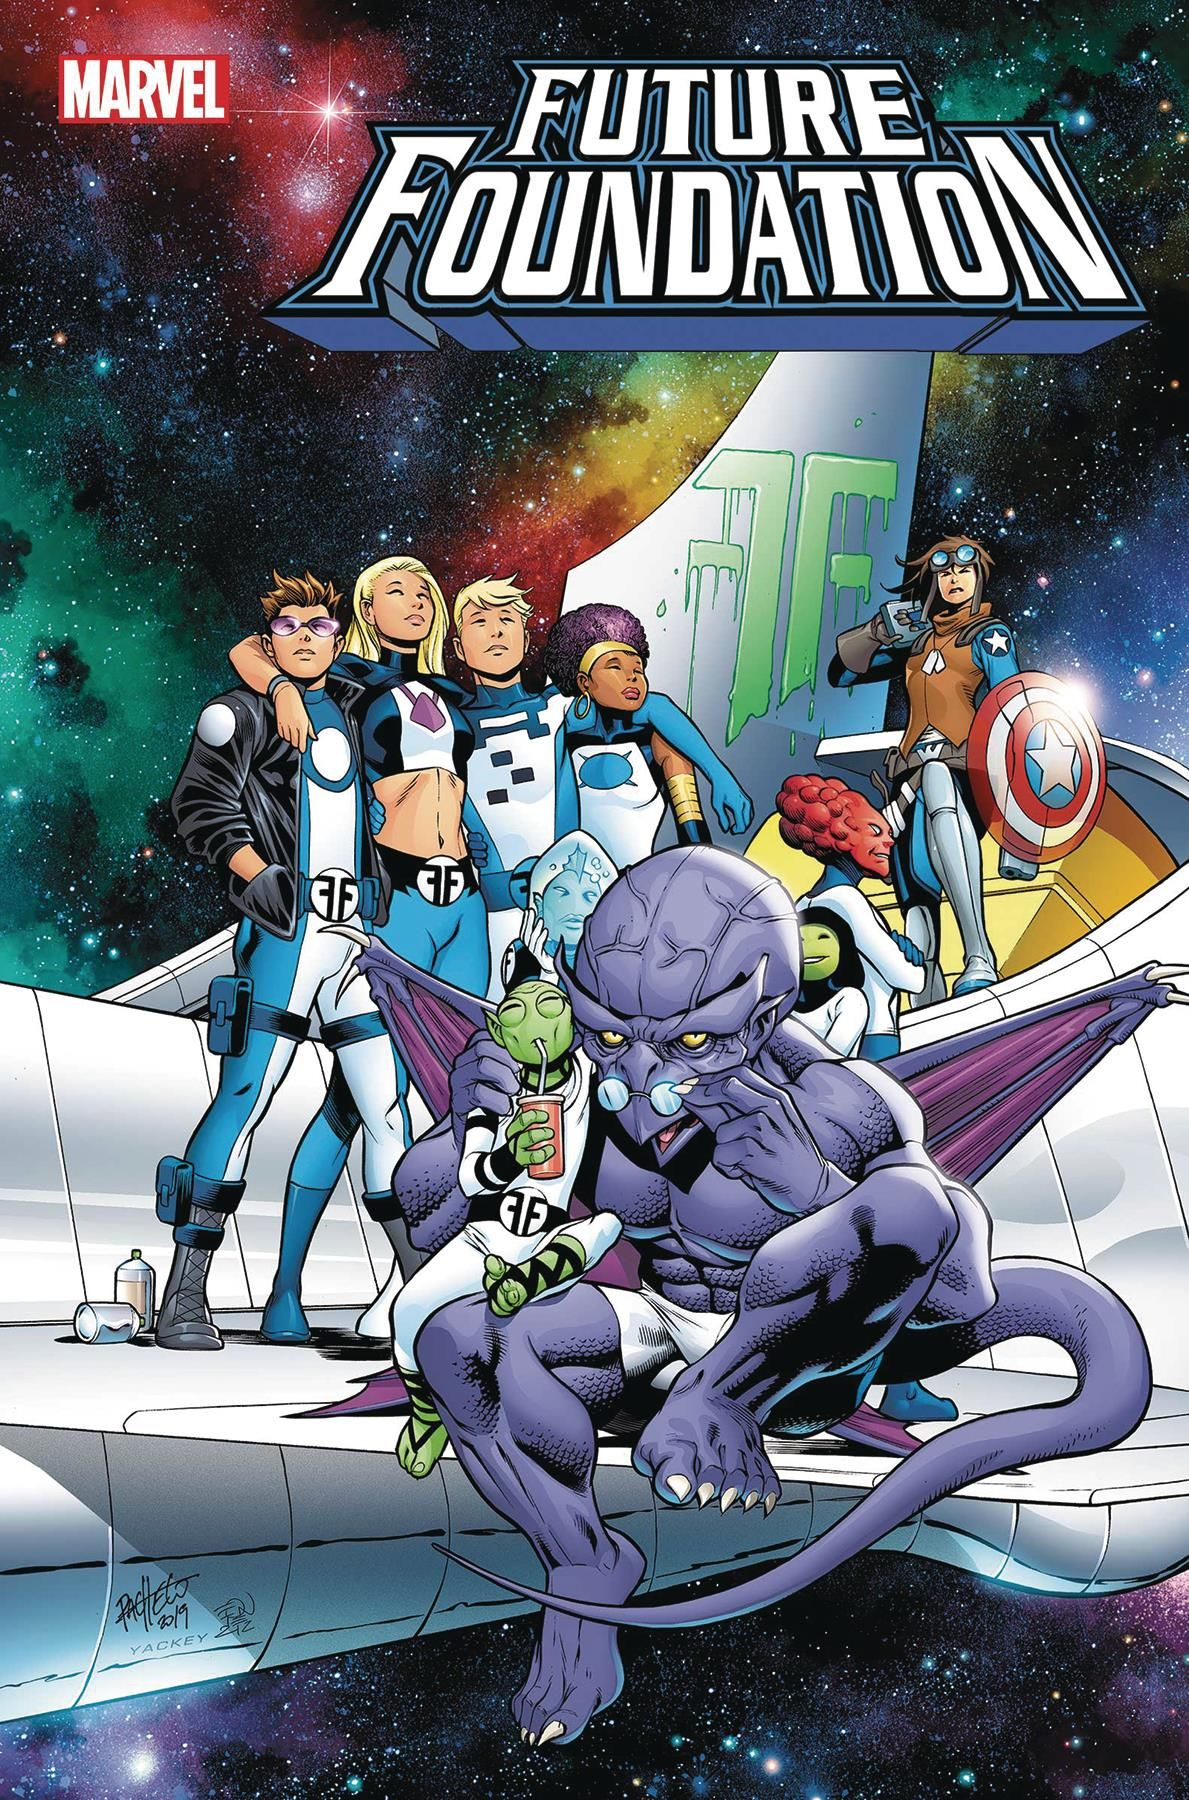 The Final Frontier The Future Foundation Once Banded Together To Help The Fantastic Four Rebuild The Entire Multiverse Now They M Comics Marvel Comics Marvel